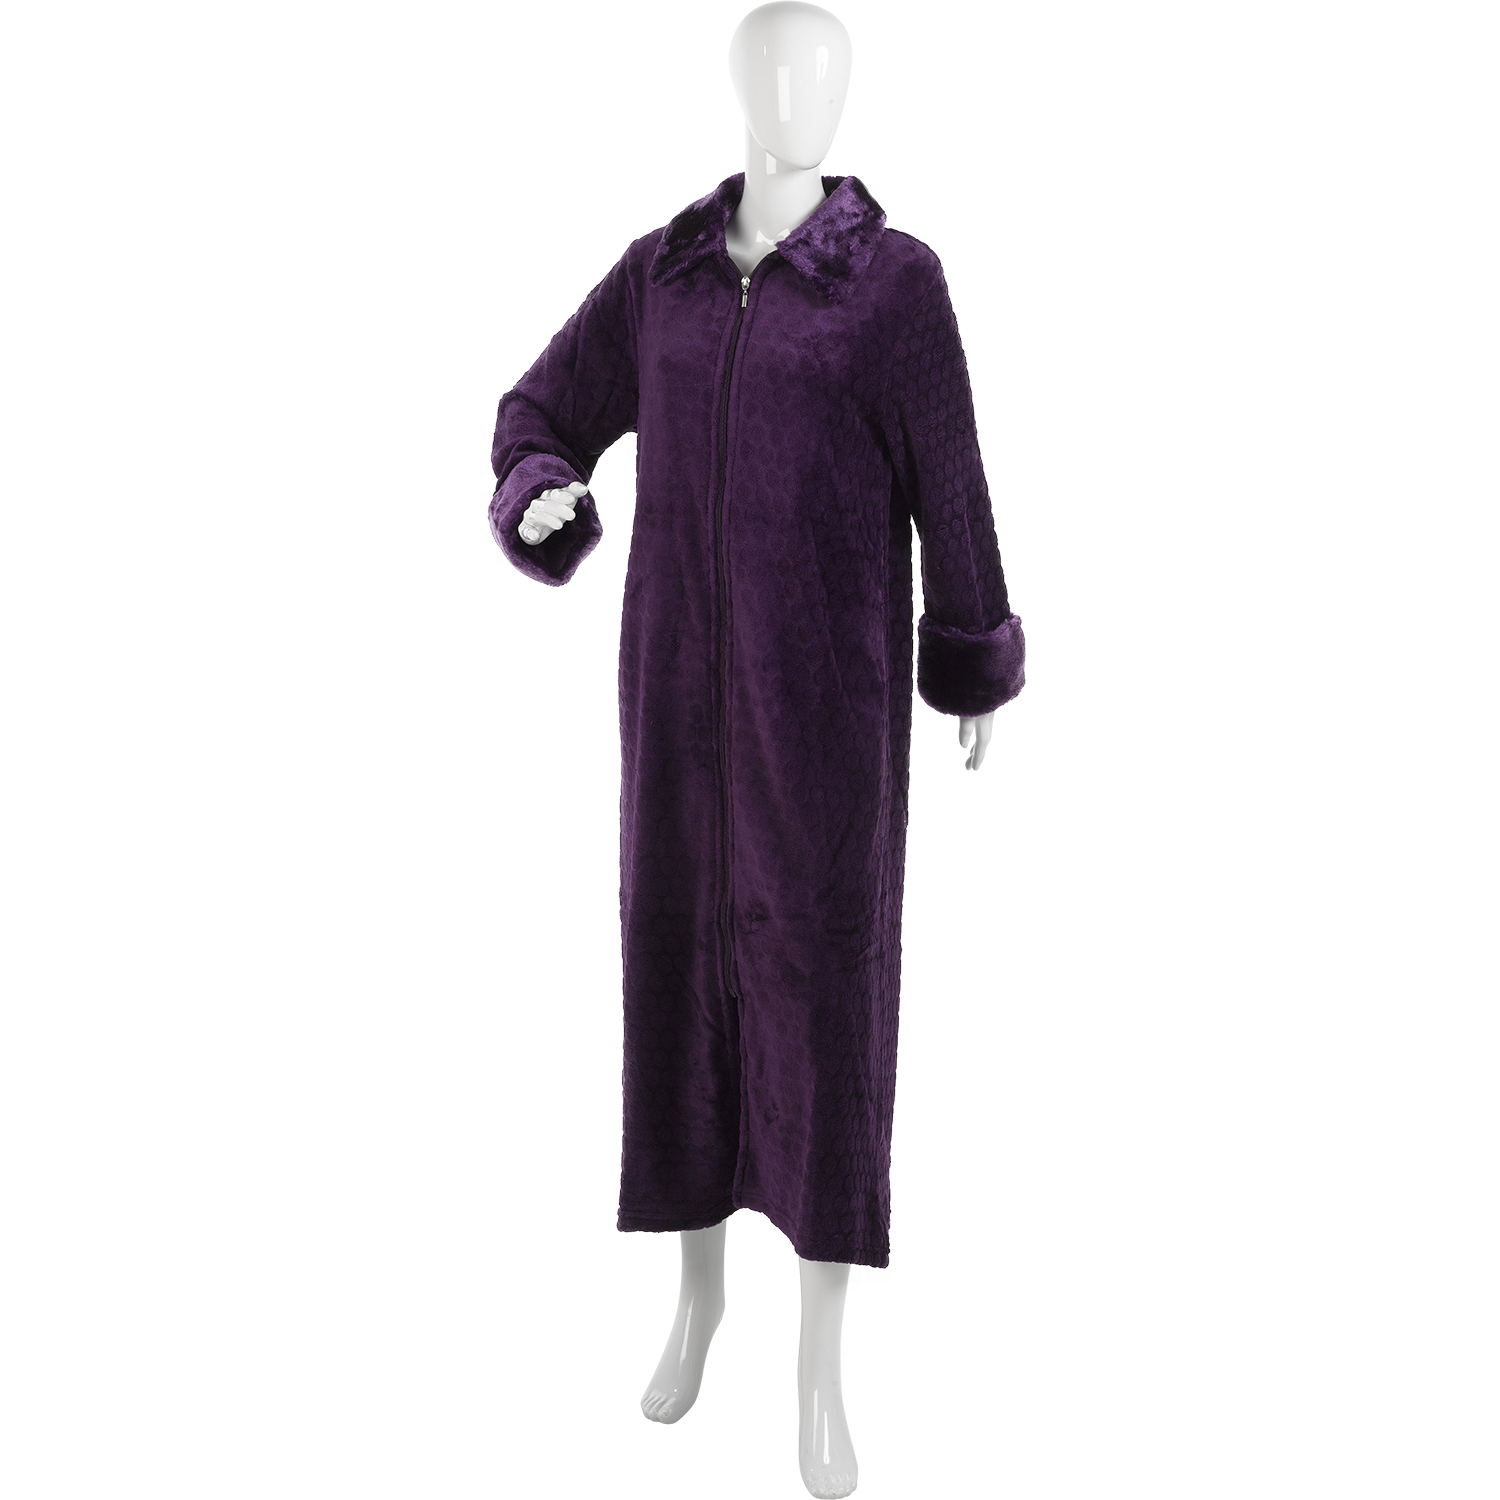 Choose from our ladies' dressing gowns and relax in comfort and style. We select sumptuously soft fabrics for our luxury dressing gowns and featherlight cotton wraps. Whether you prefer a button-through or zipped gown, you're sure to find the perfect thing.